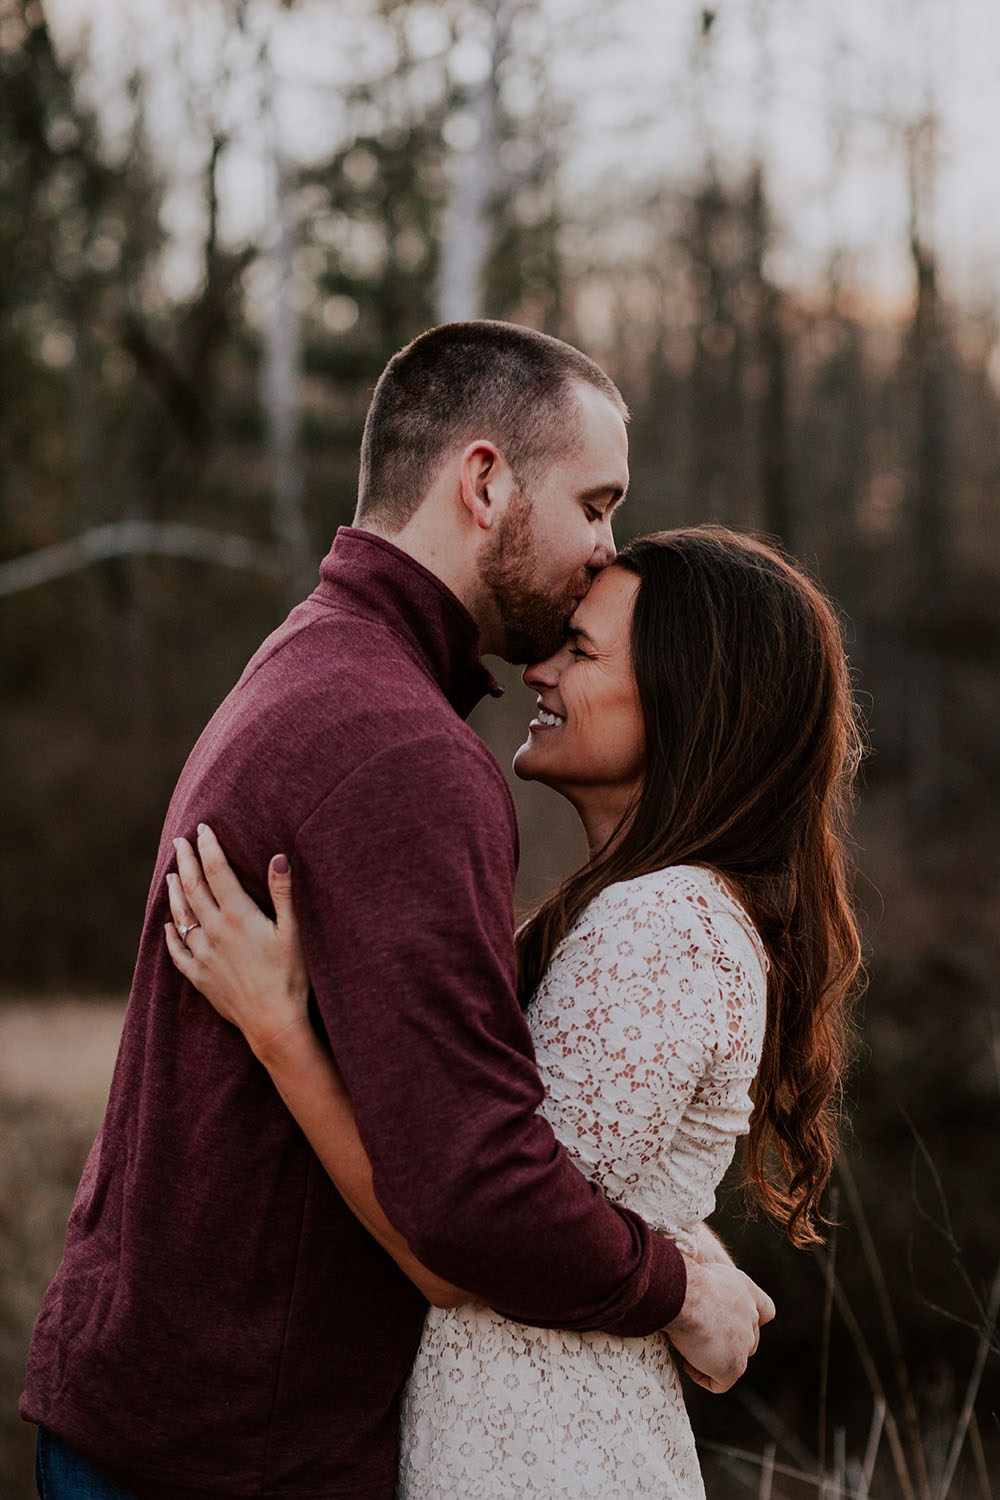 Shutter Up Studios | Wedding photographer in Crawfordsville Indiana | Sunset engagement session with white lace dress and forehead kiss